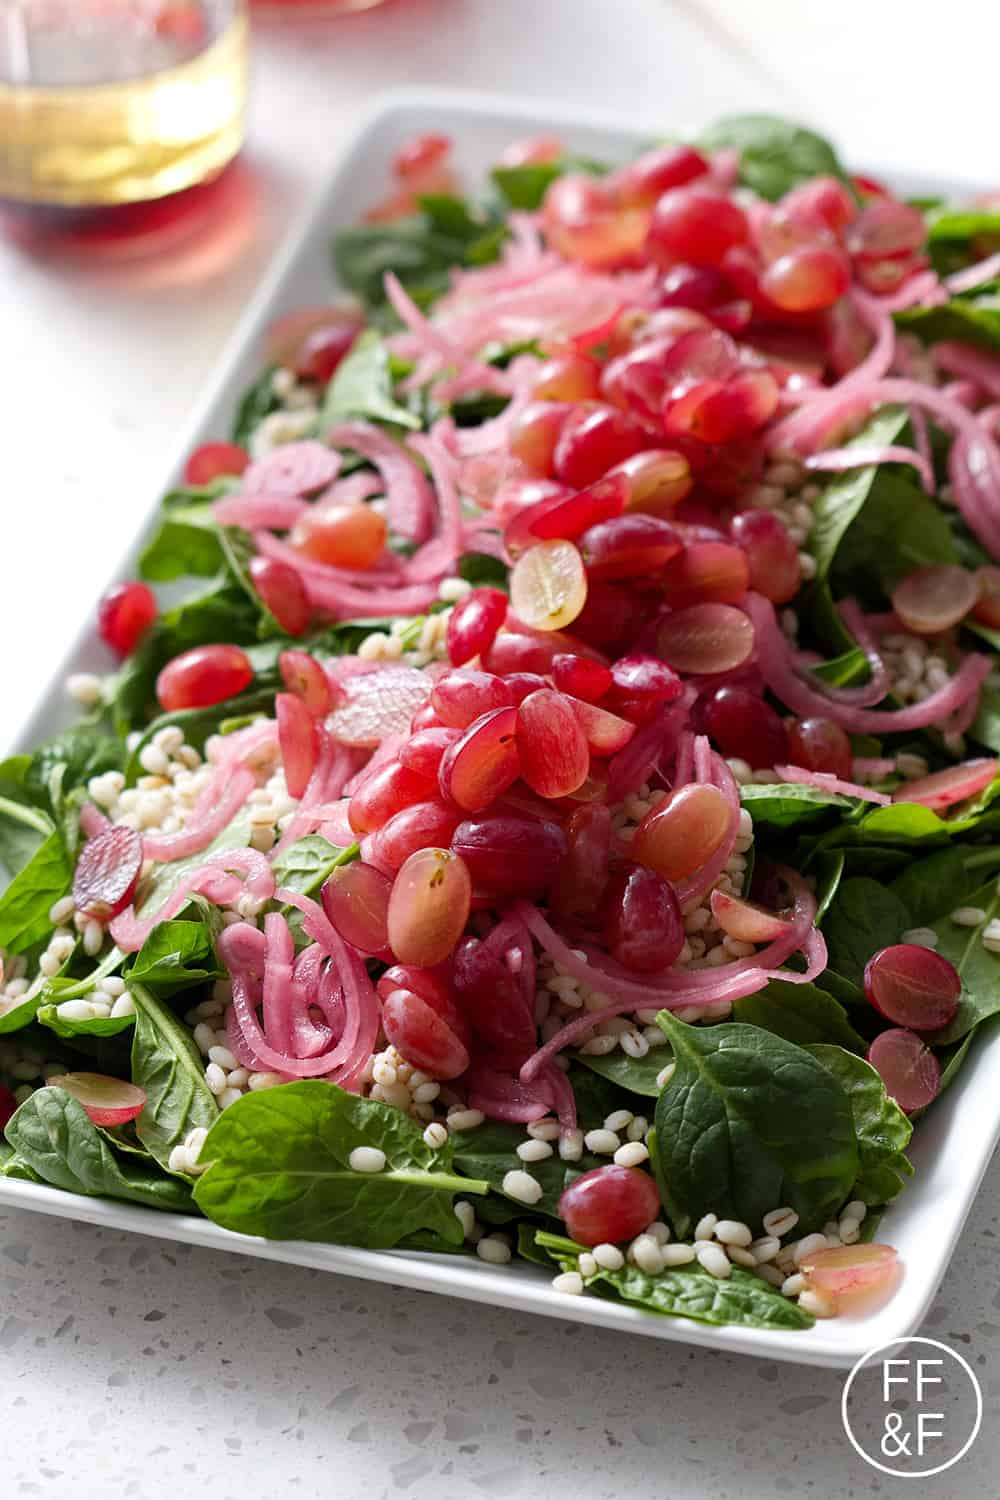 Spinach Salad with Barley with Grapes and Pickled Onions